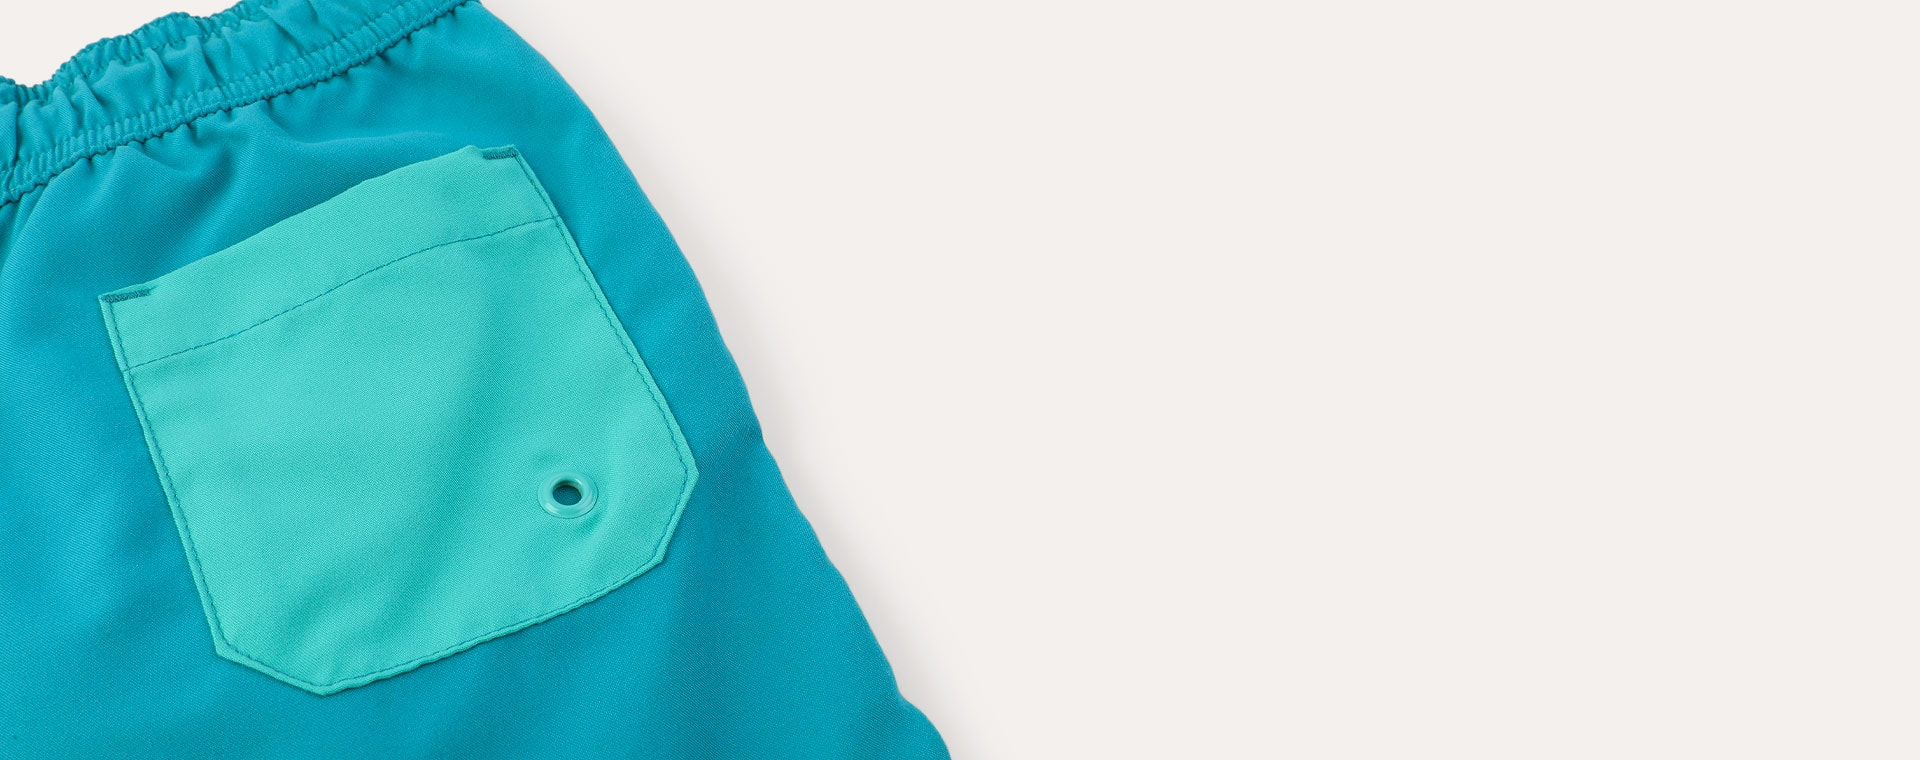 Teal Mix KIDLY Label Recycled Swim Shorts